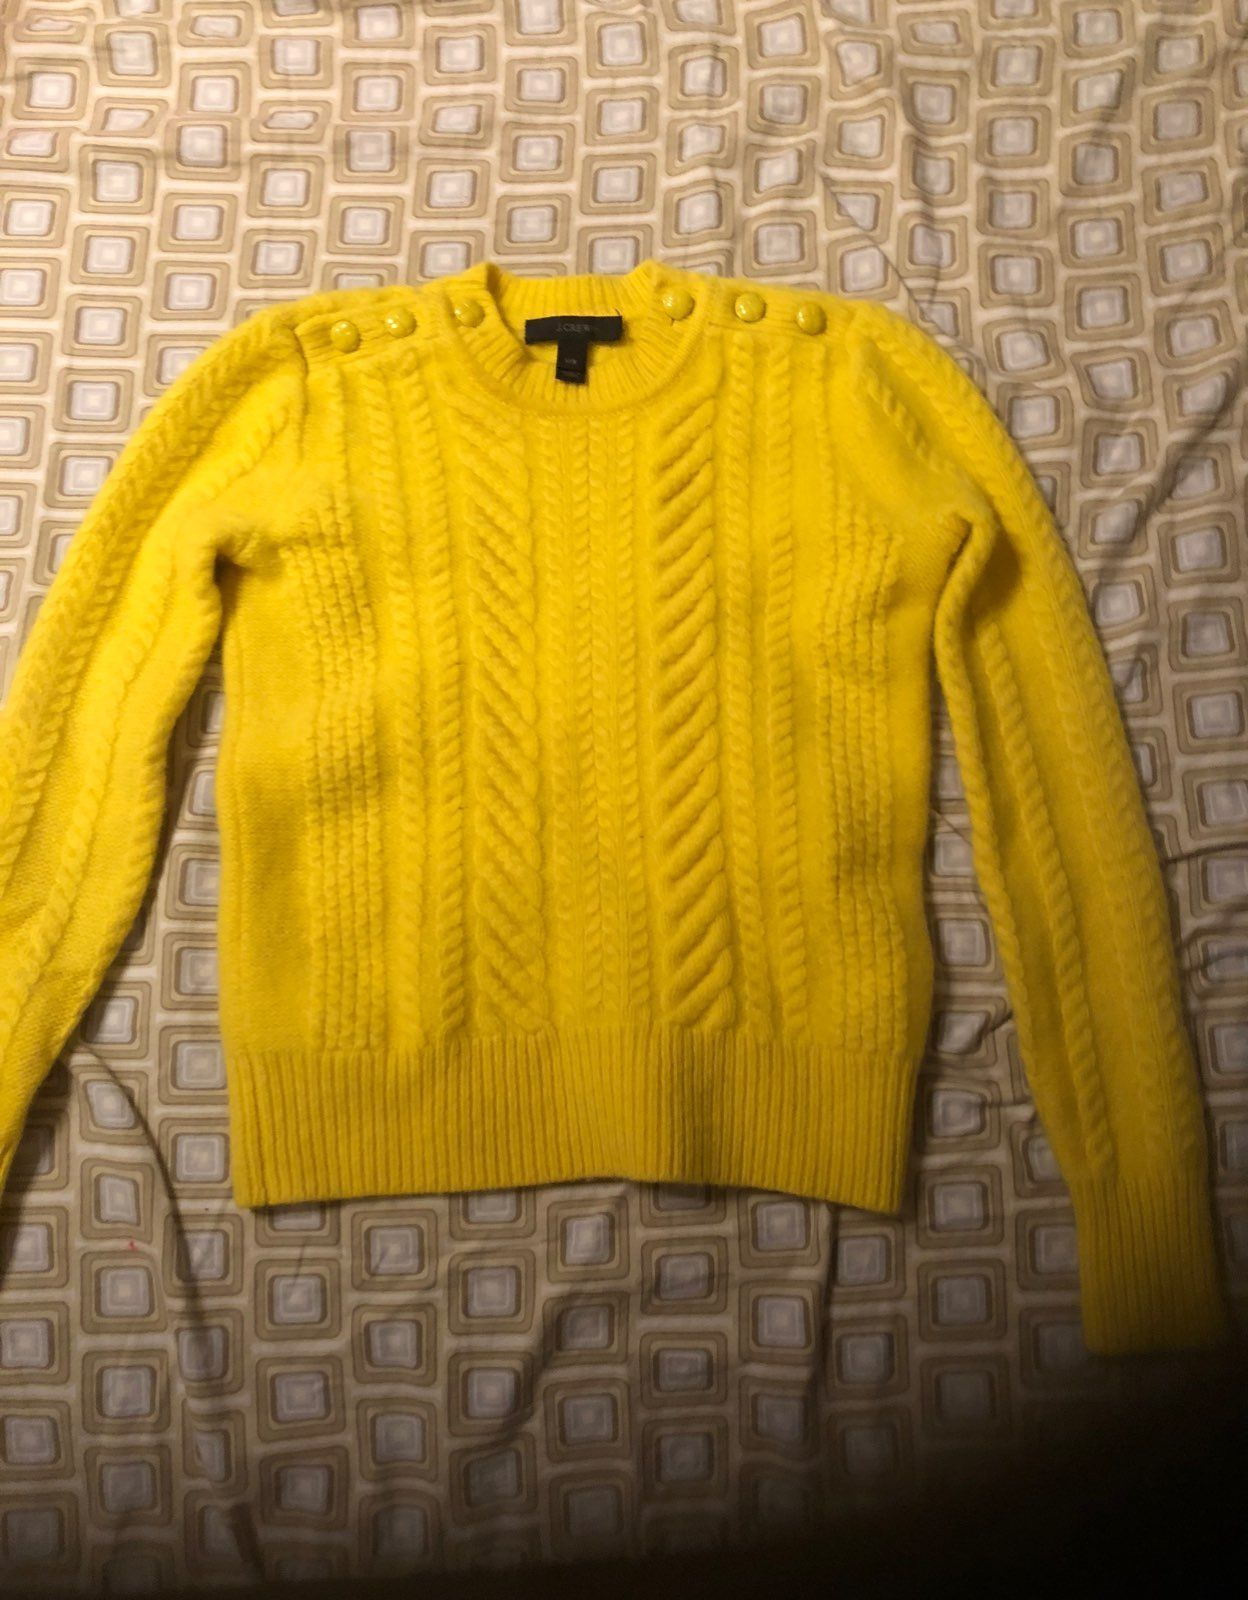 J Crew Yellow Sweater XXS - Mercari: BUY & SELL THINGS YOU LOVE